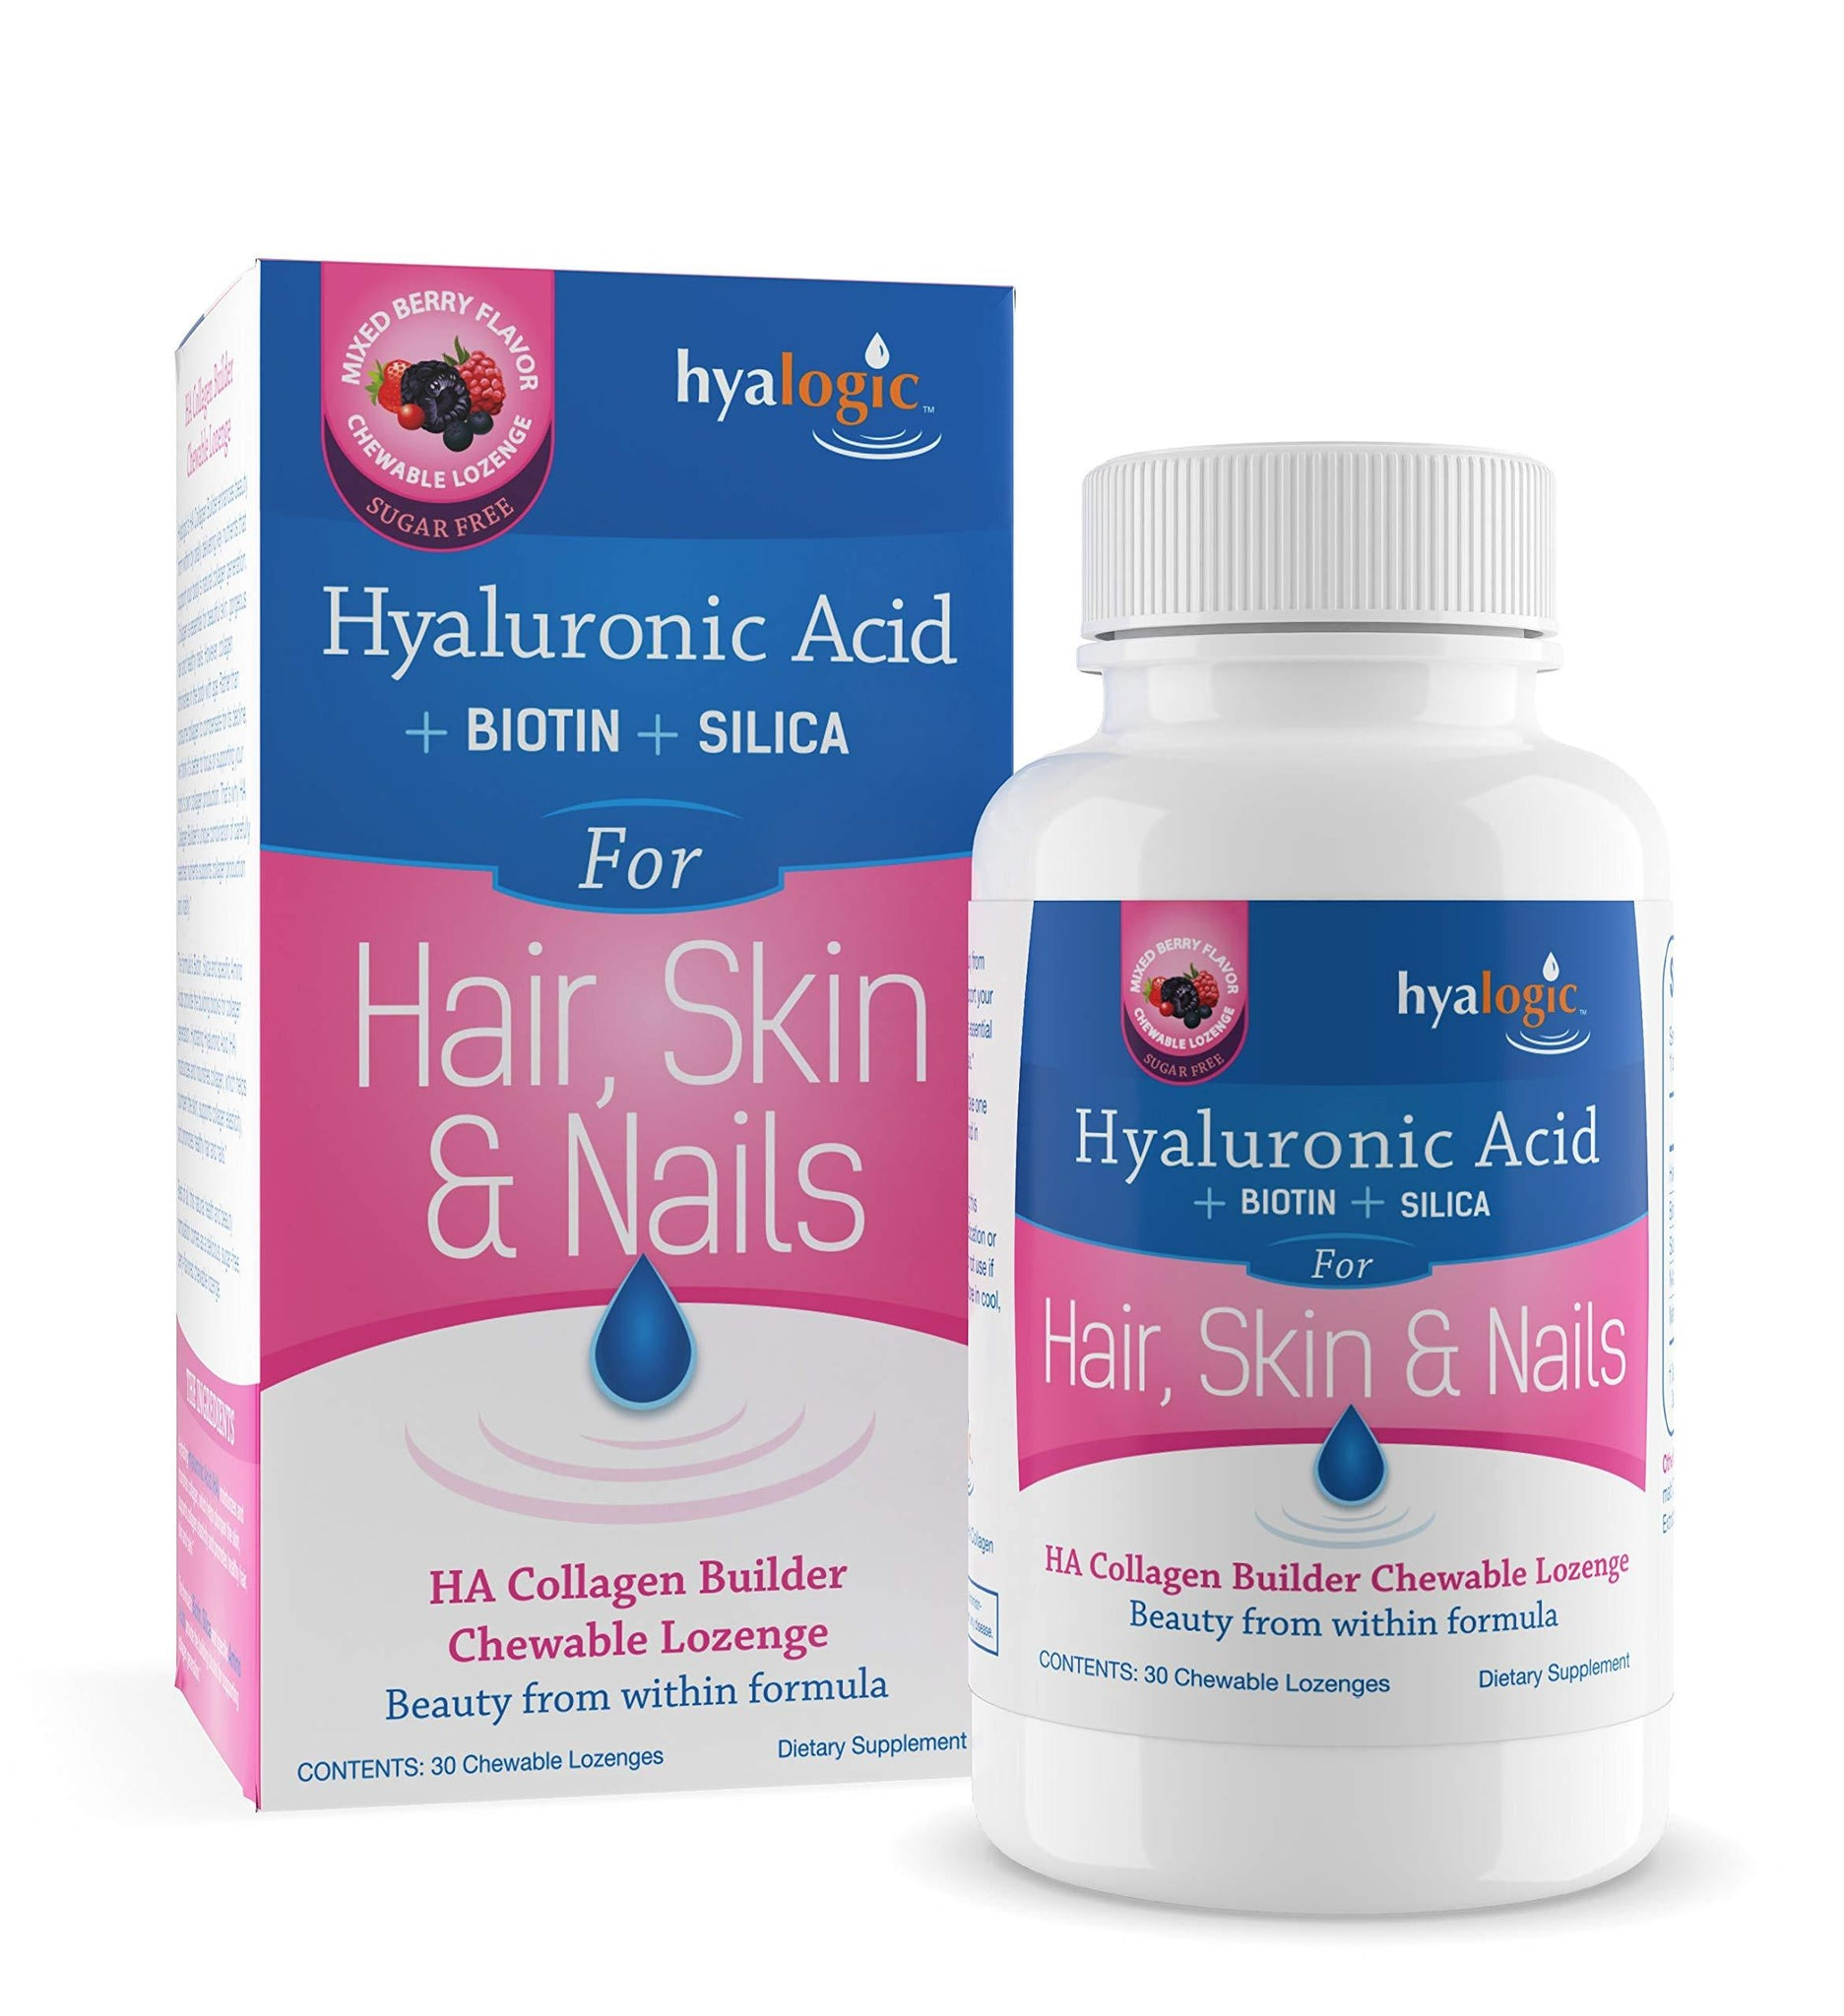 Hyaluronic Acid + Collagen Builder - Chewable Collagen Tablets for Healthy Skin, Hair, Nails - HA Collagen Booster: Vegan | Gluten Free | Mixed Berry Flavor - 30 count by Hyalogic